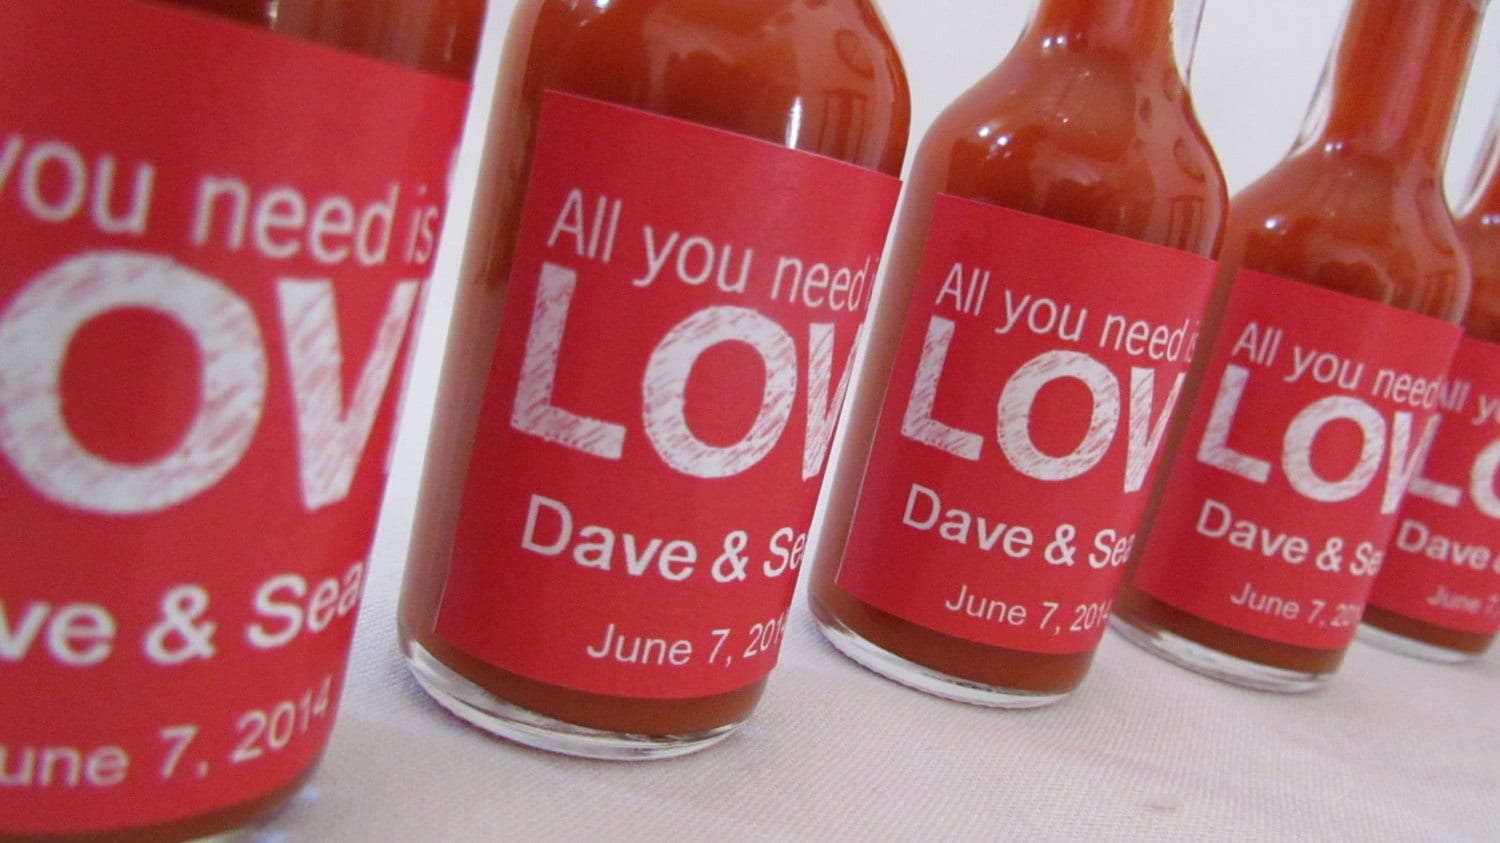 Hot Sauce wedding favors all you need is Love Retro chalk pick | Etsy